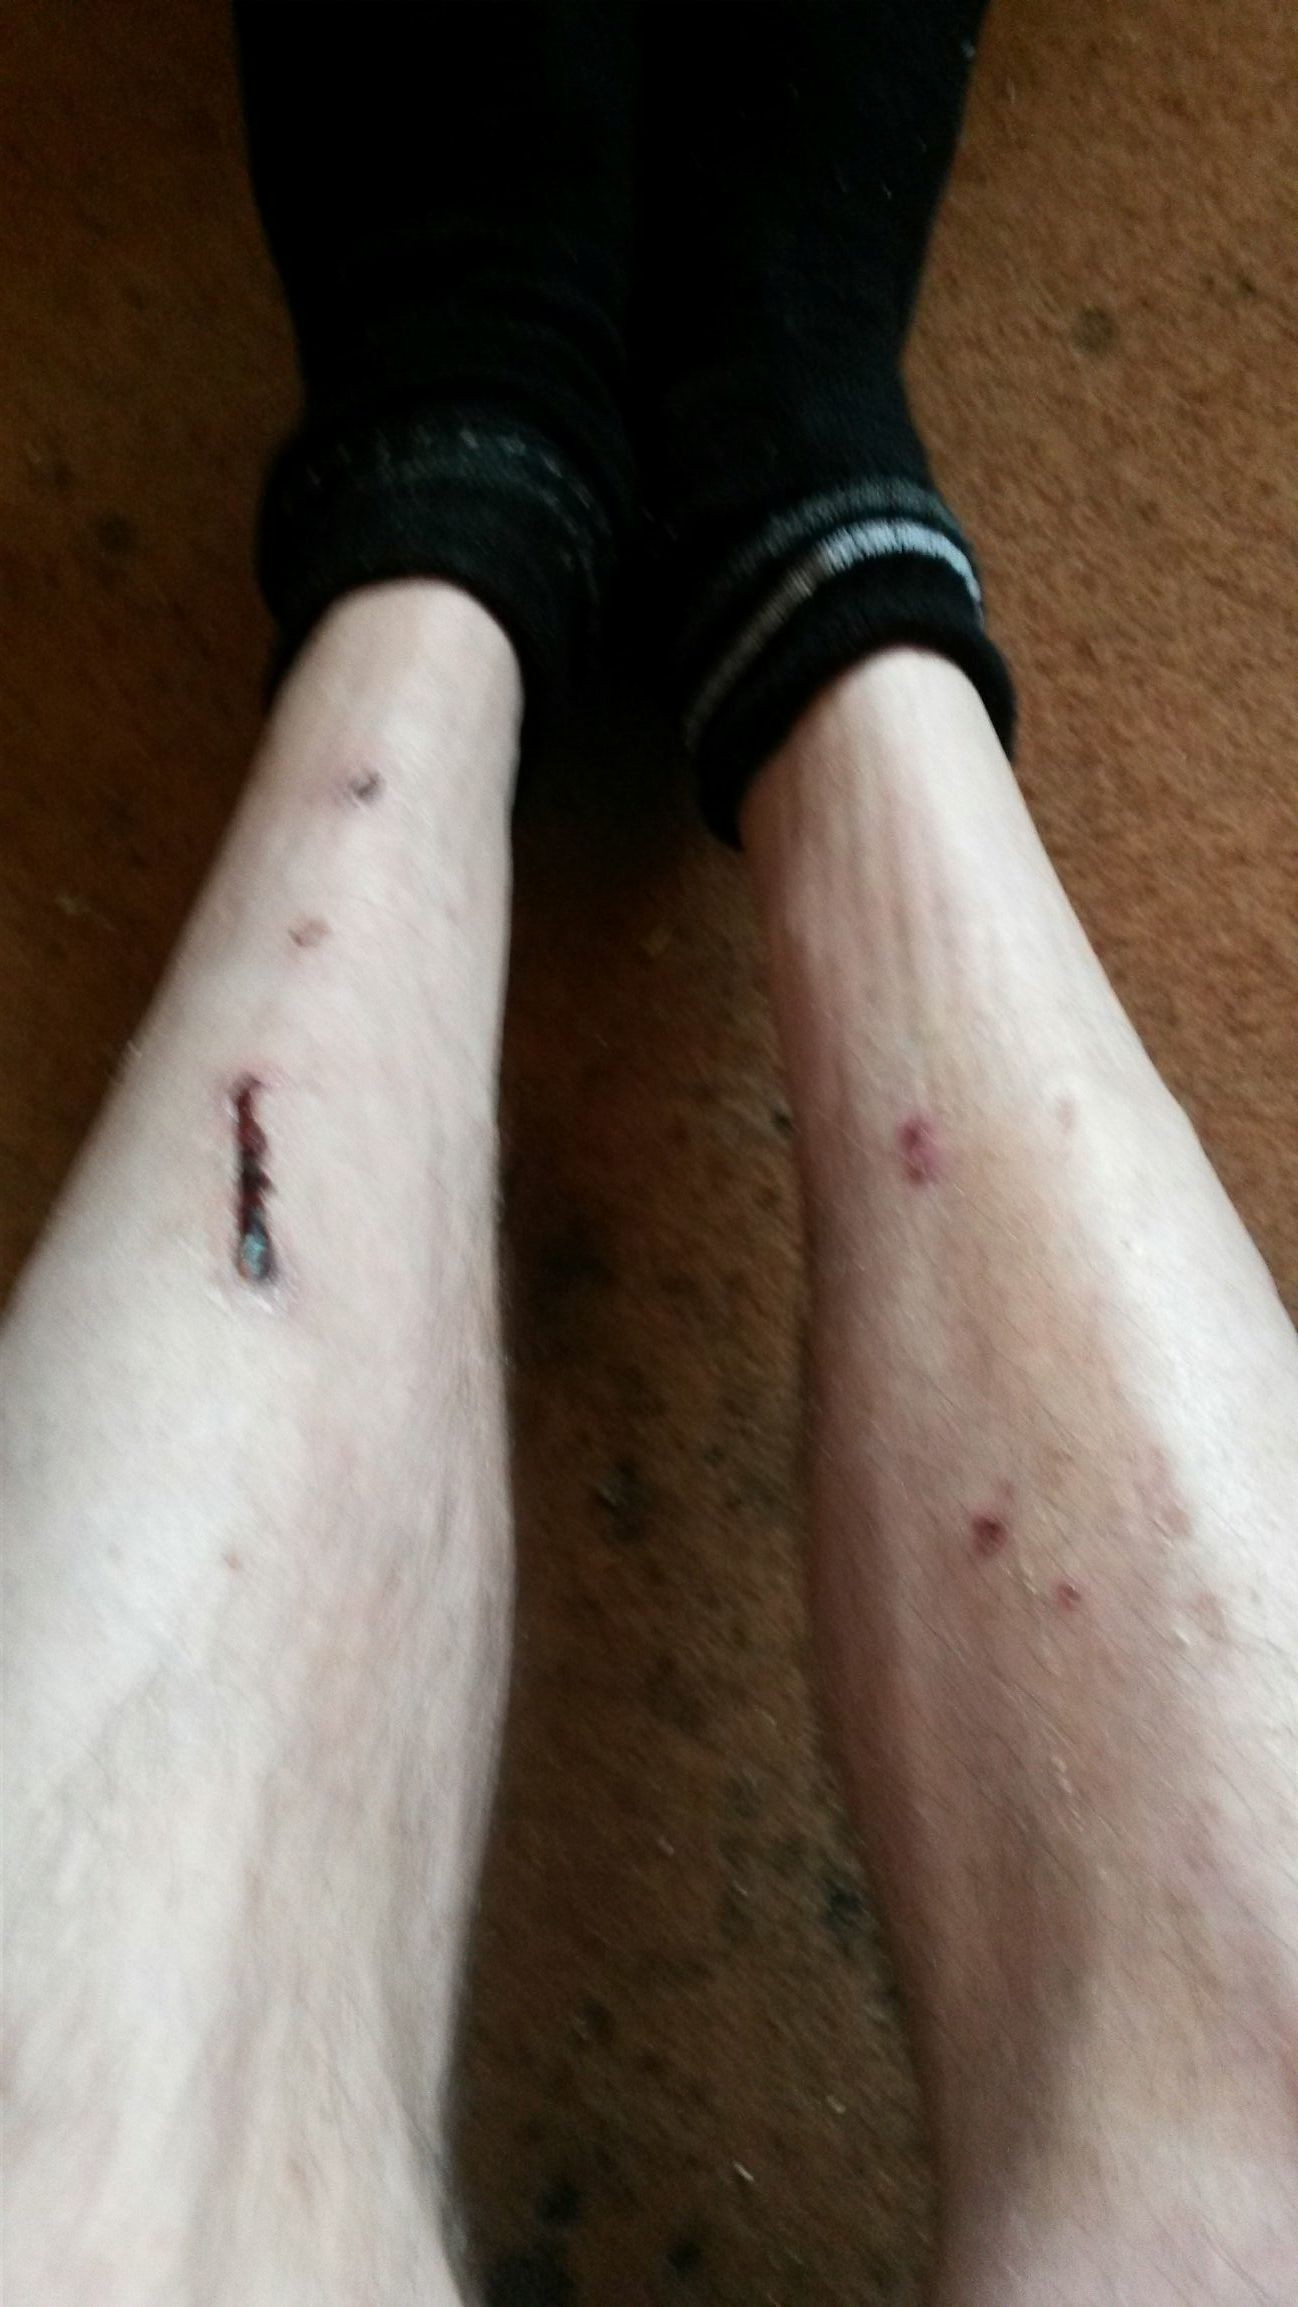 My legs after riding that bloody bike!